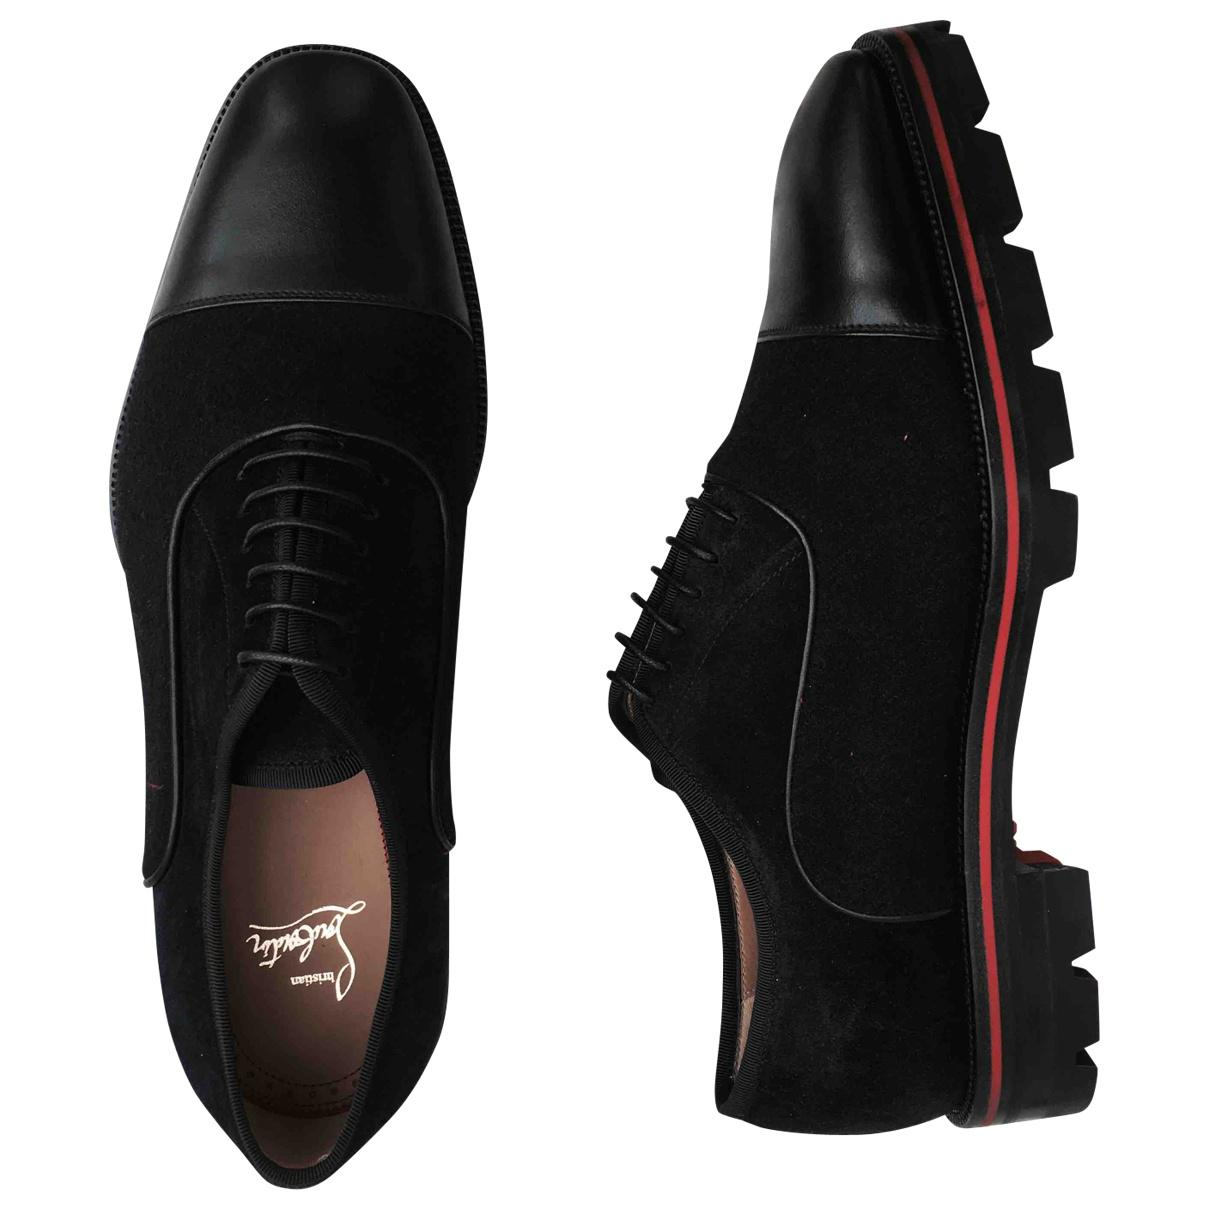 Pre-owned - Leather lace ups Christian Louboutin B5TCYy0